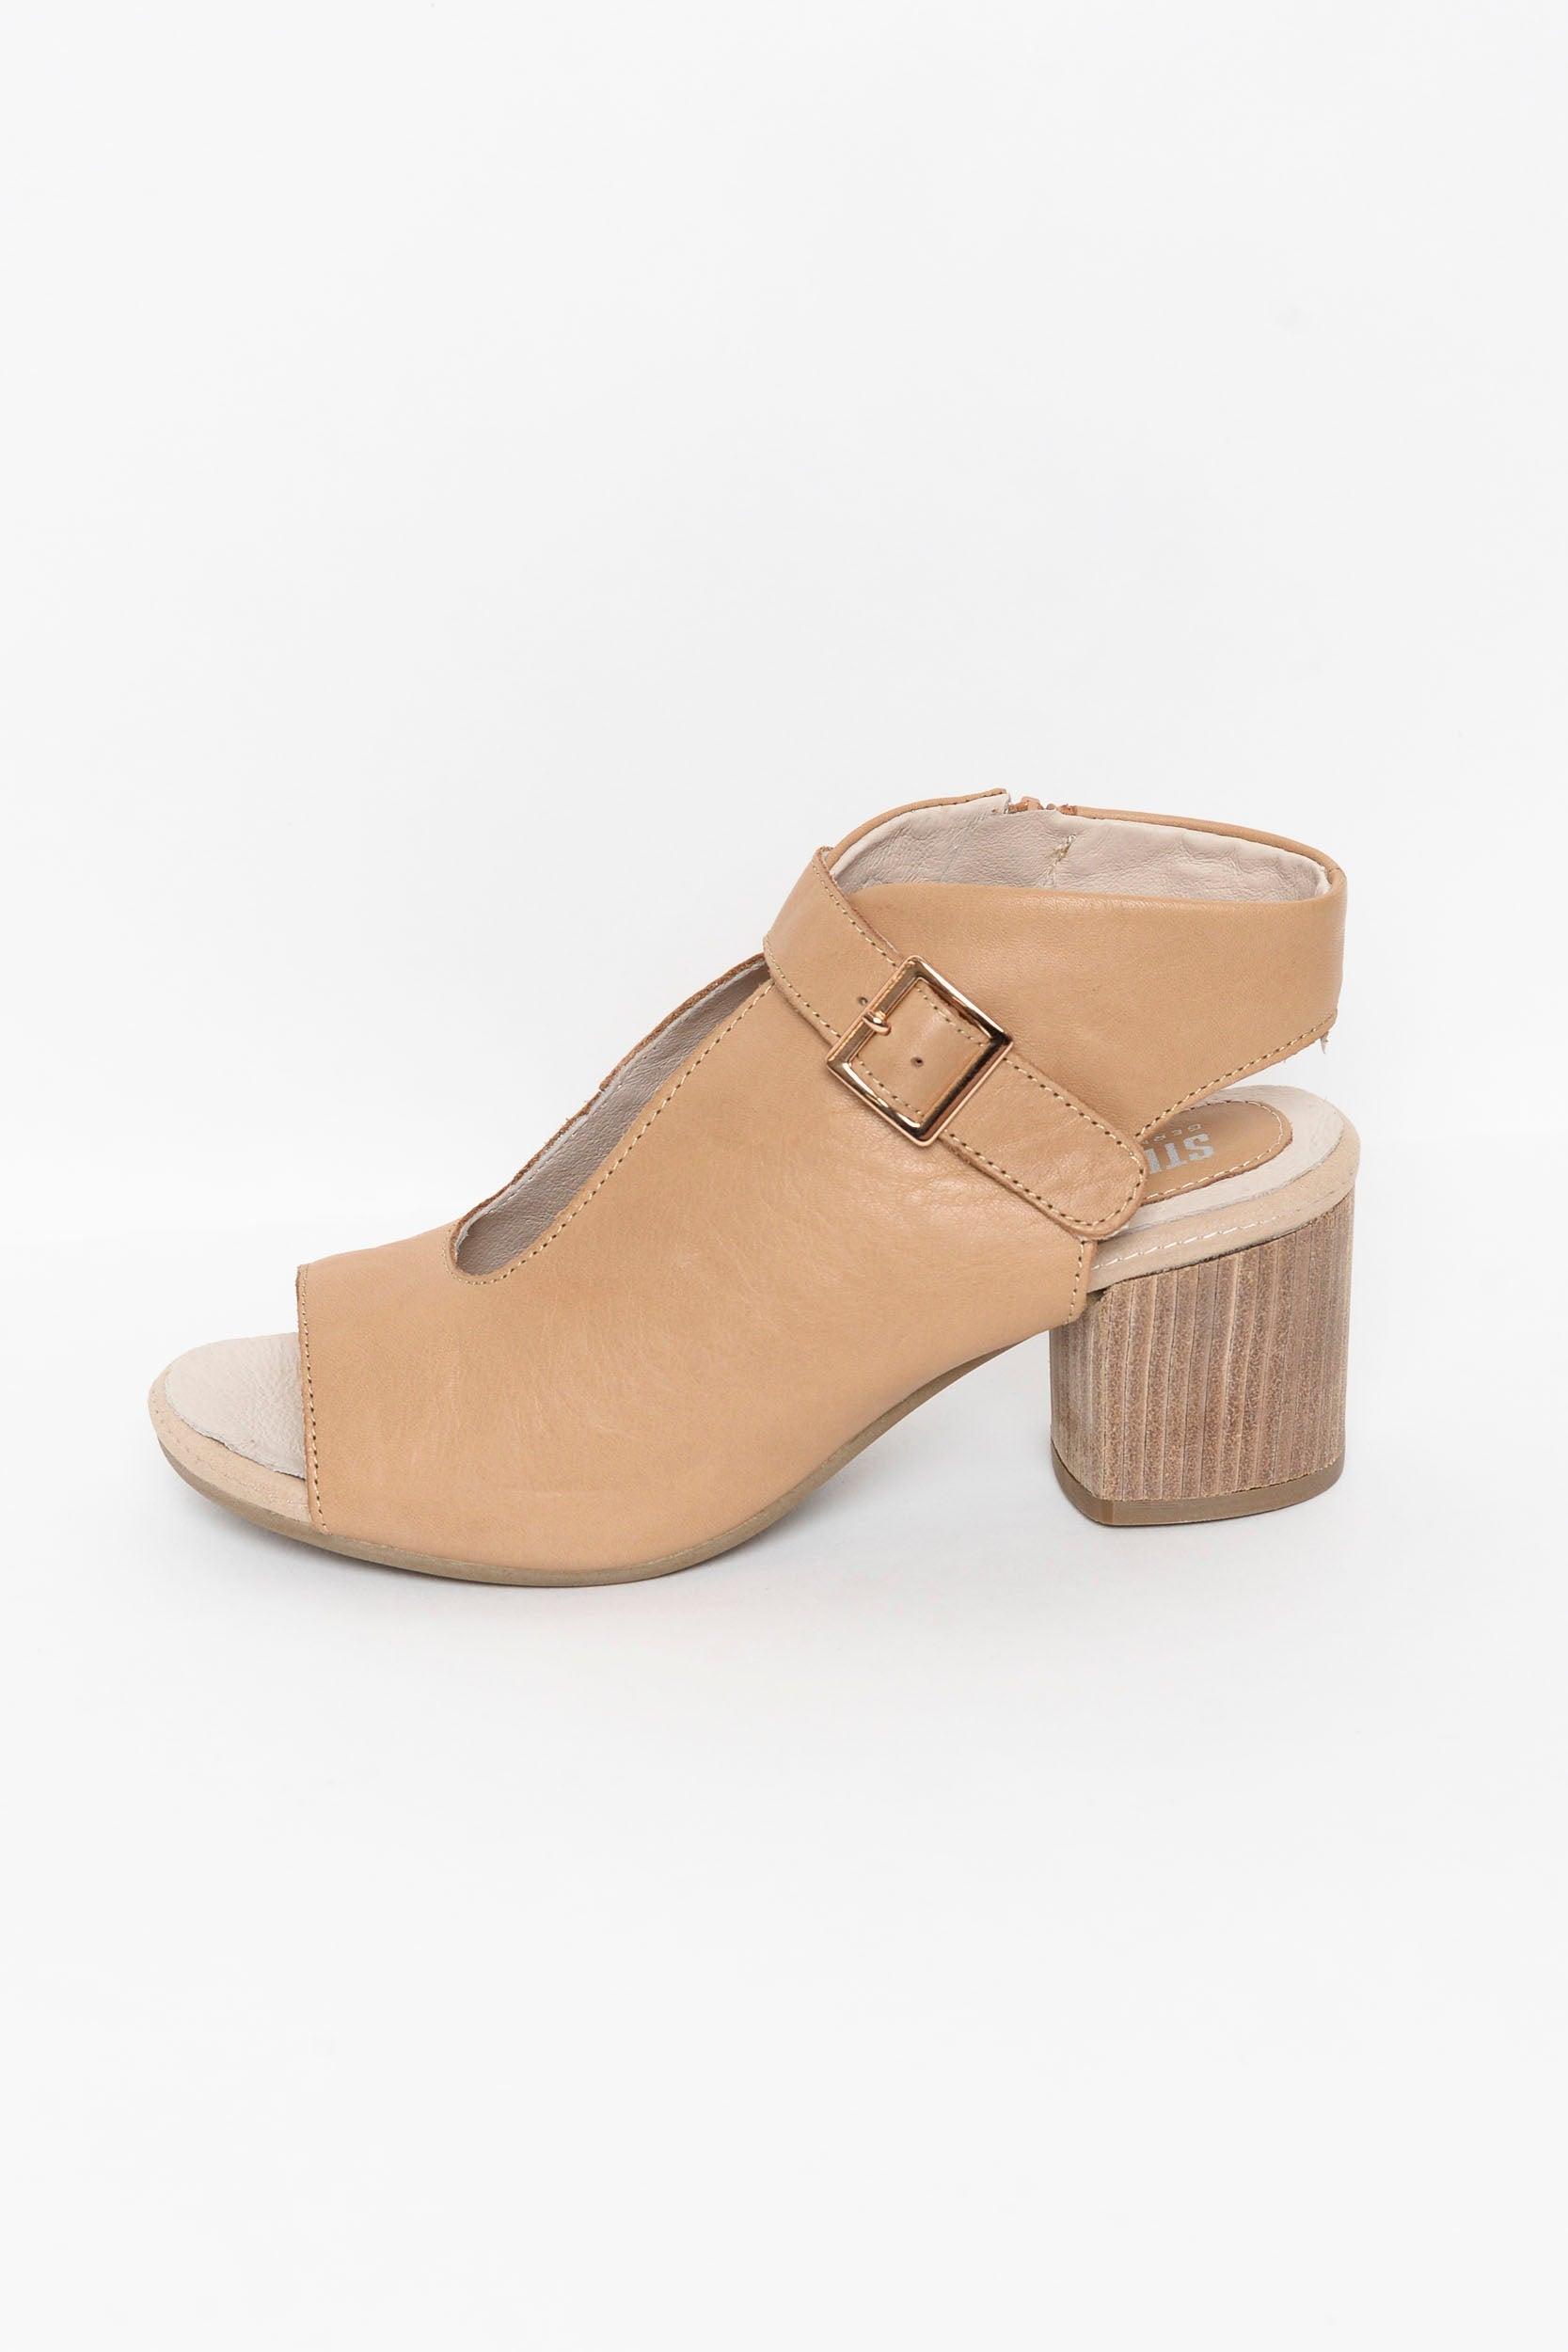 Elixir Camel Leather Heeled Sandal